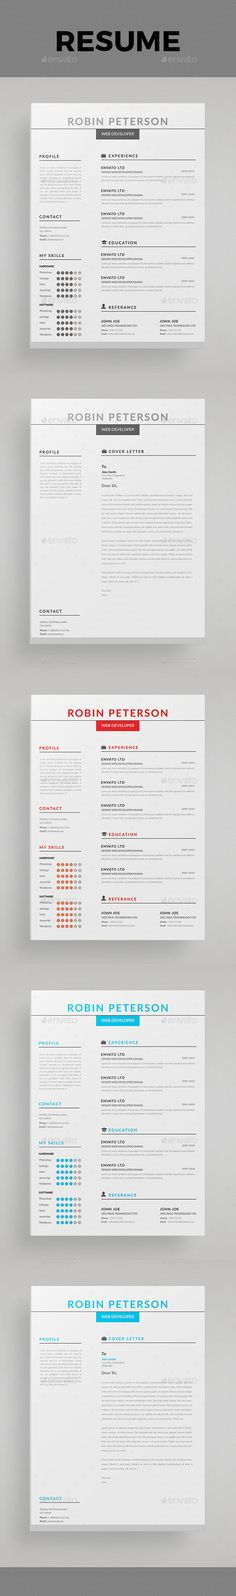 interior design resume template word samples free download business templates graphic for mac